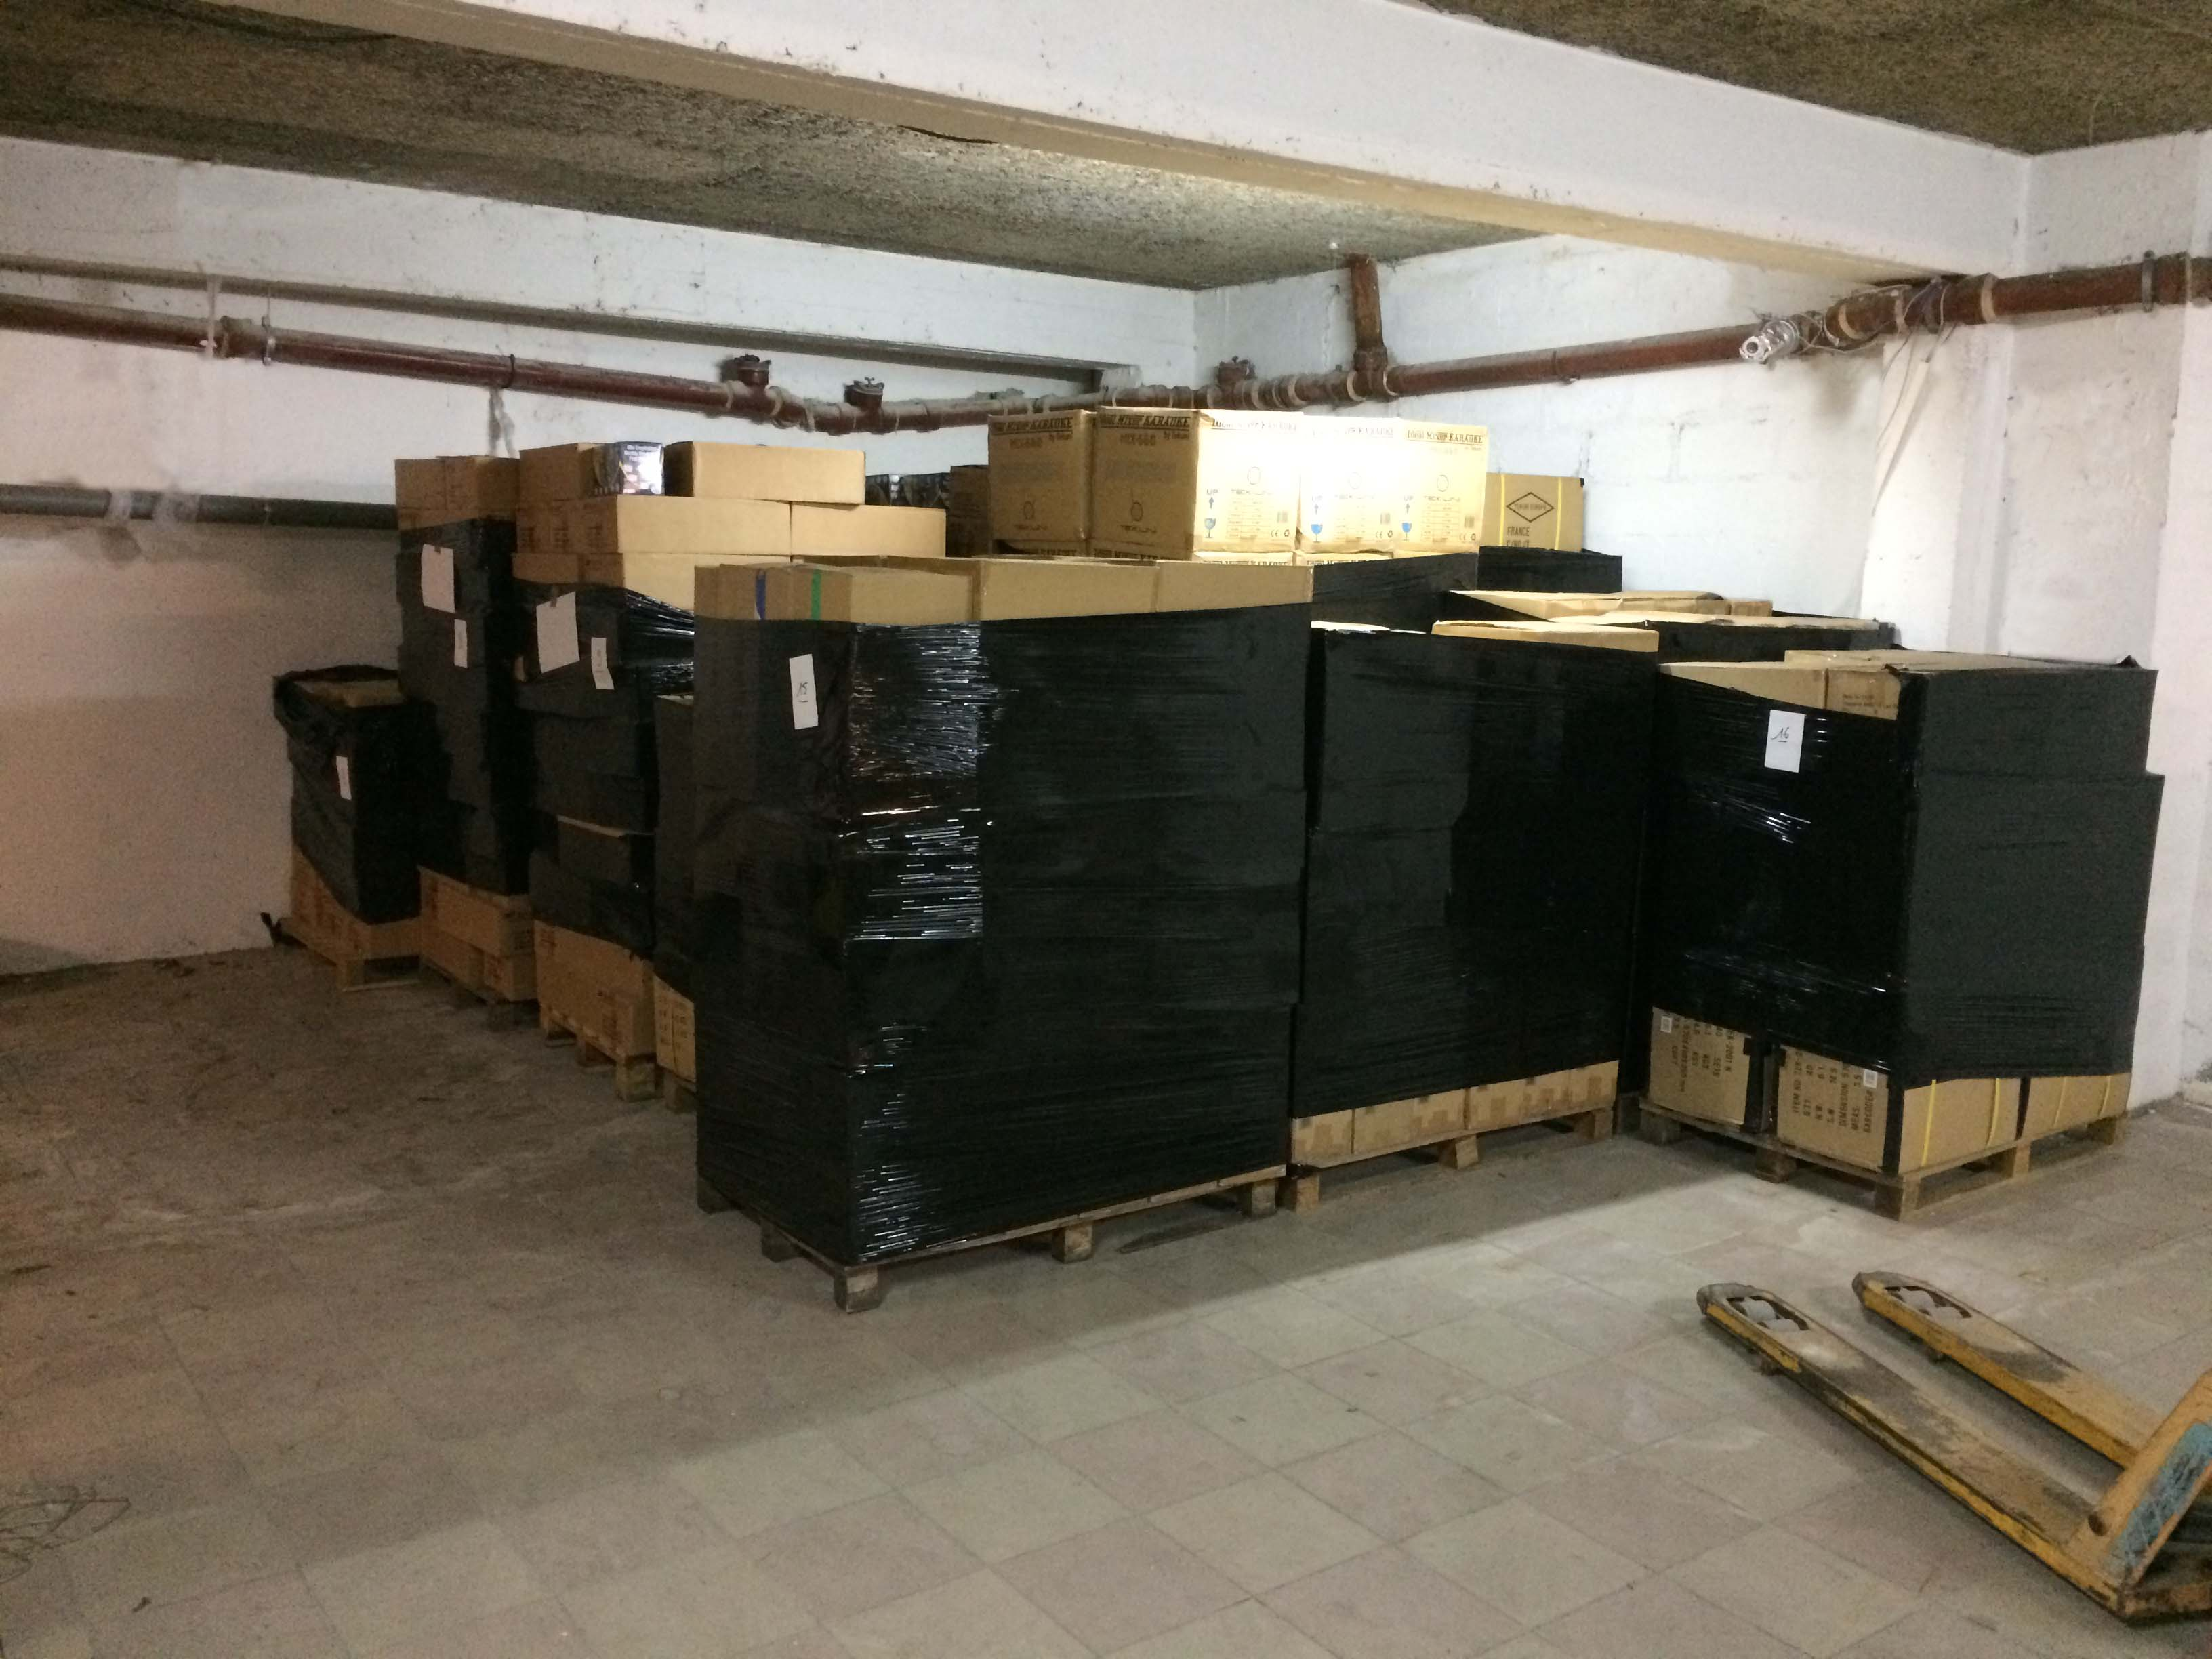 location 7m2 de stockage dans local s curis 1 mois minimum saint maur des foss s 94100. Black Bedroom Furniture Sets. Home Design Ideas